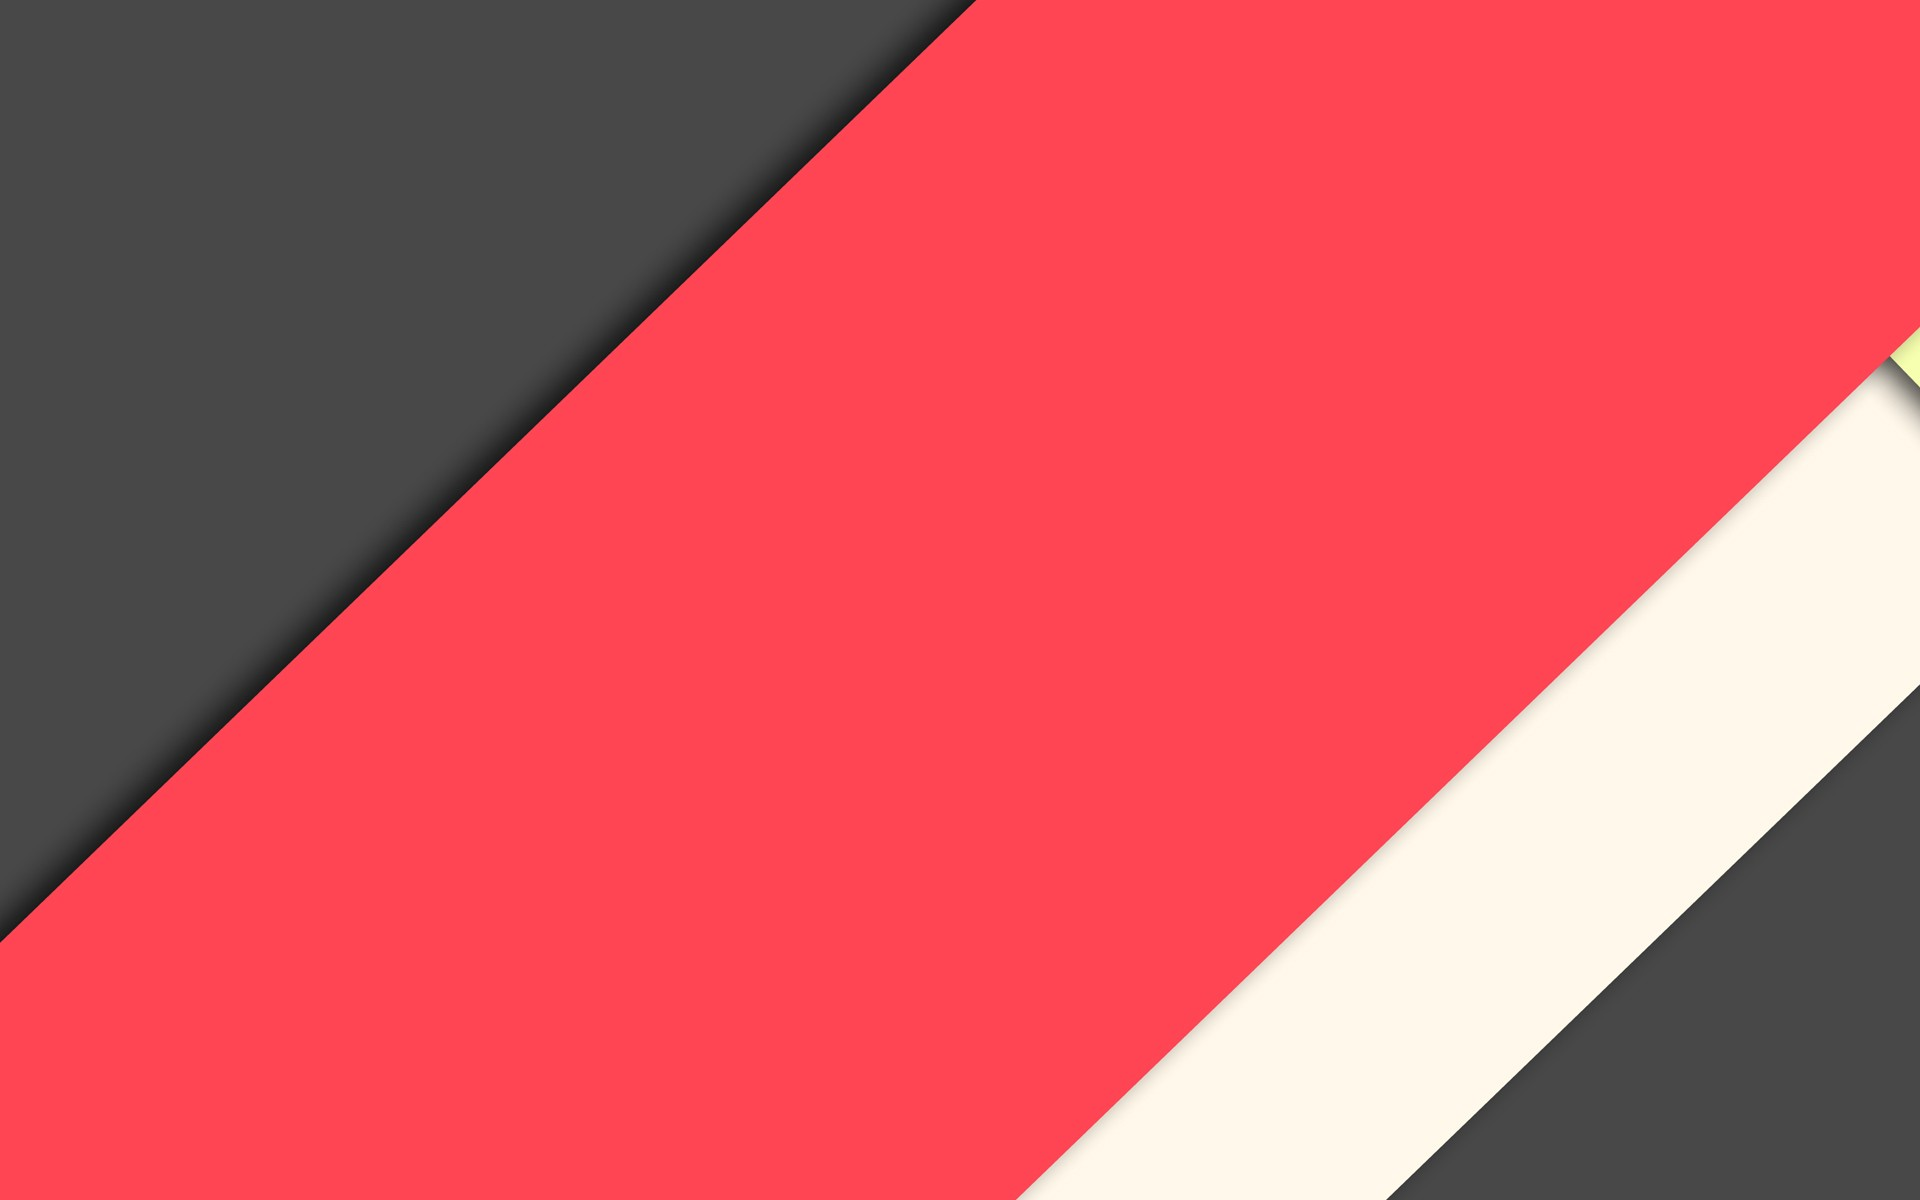 Material Design HD Background By Vactual Papers Wallpaper 107